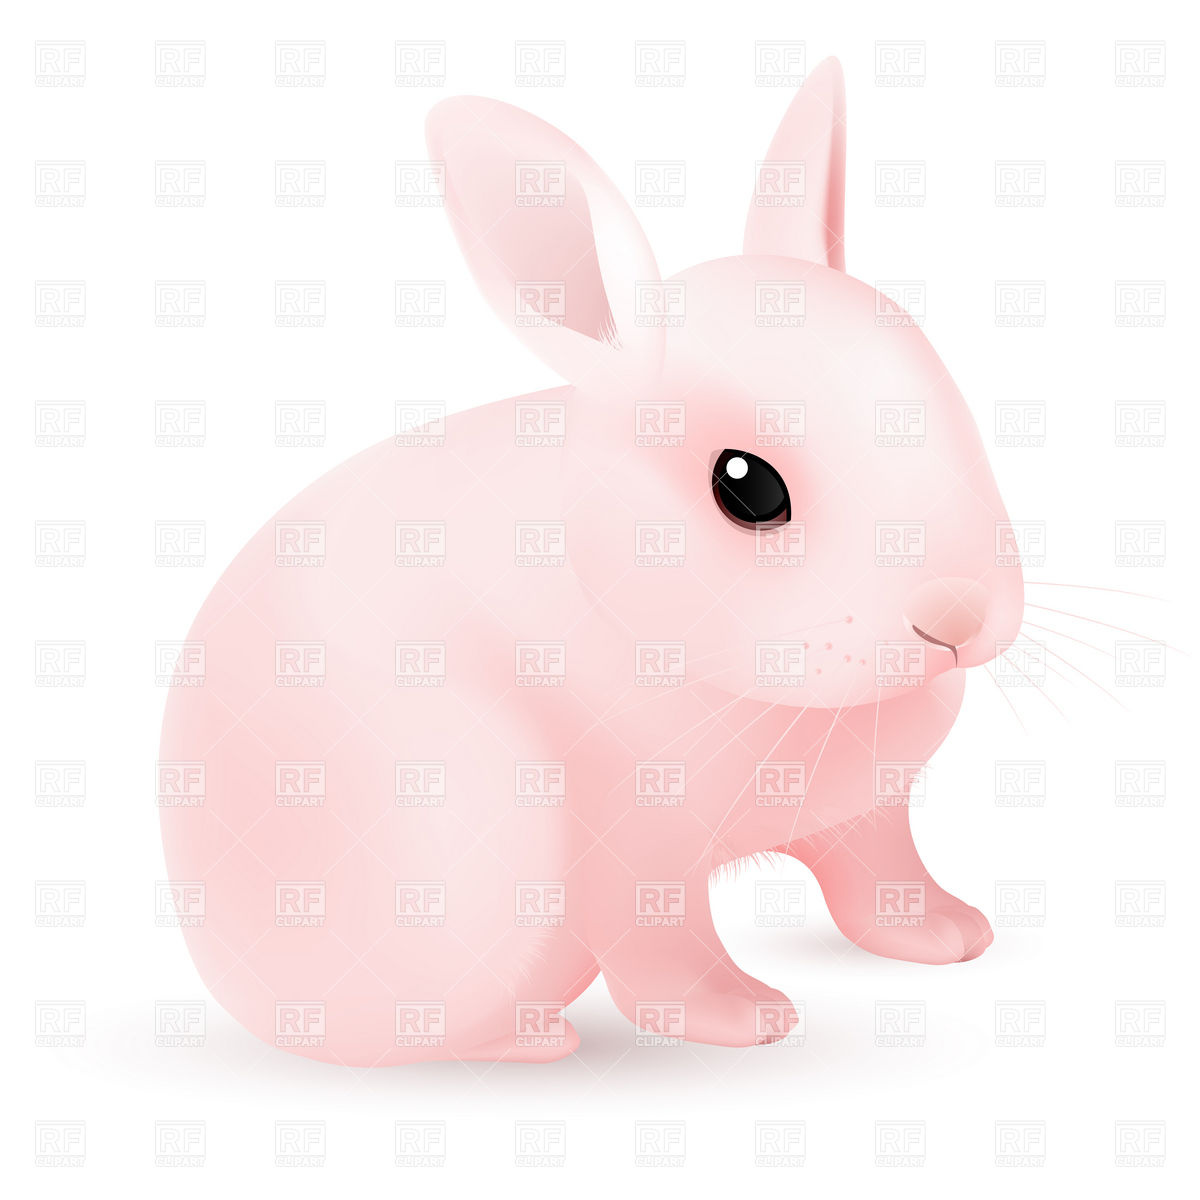 Free Download And Animals Pink Easter Bunny Download Royalty Free Vector Clipart 1200x1200 For Your Desktop Mobile Tablet Explore 46 Pink Bunny Wallpaper Baby Bunny Wallpaper Cute Bunnies Wallpaper